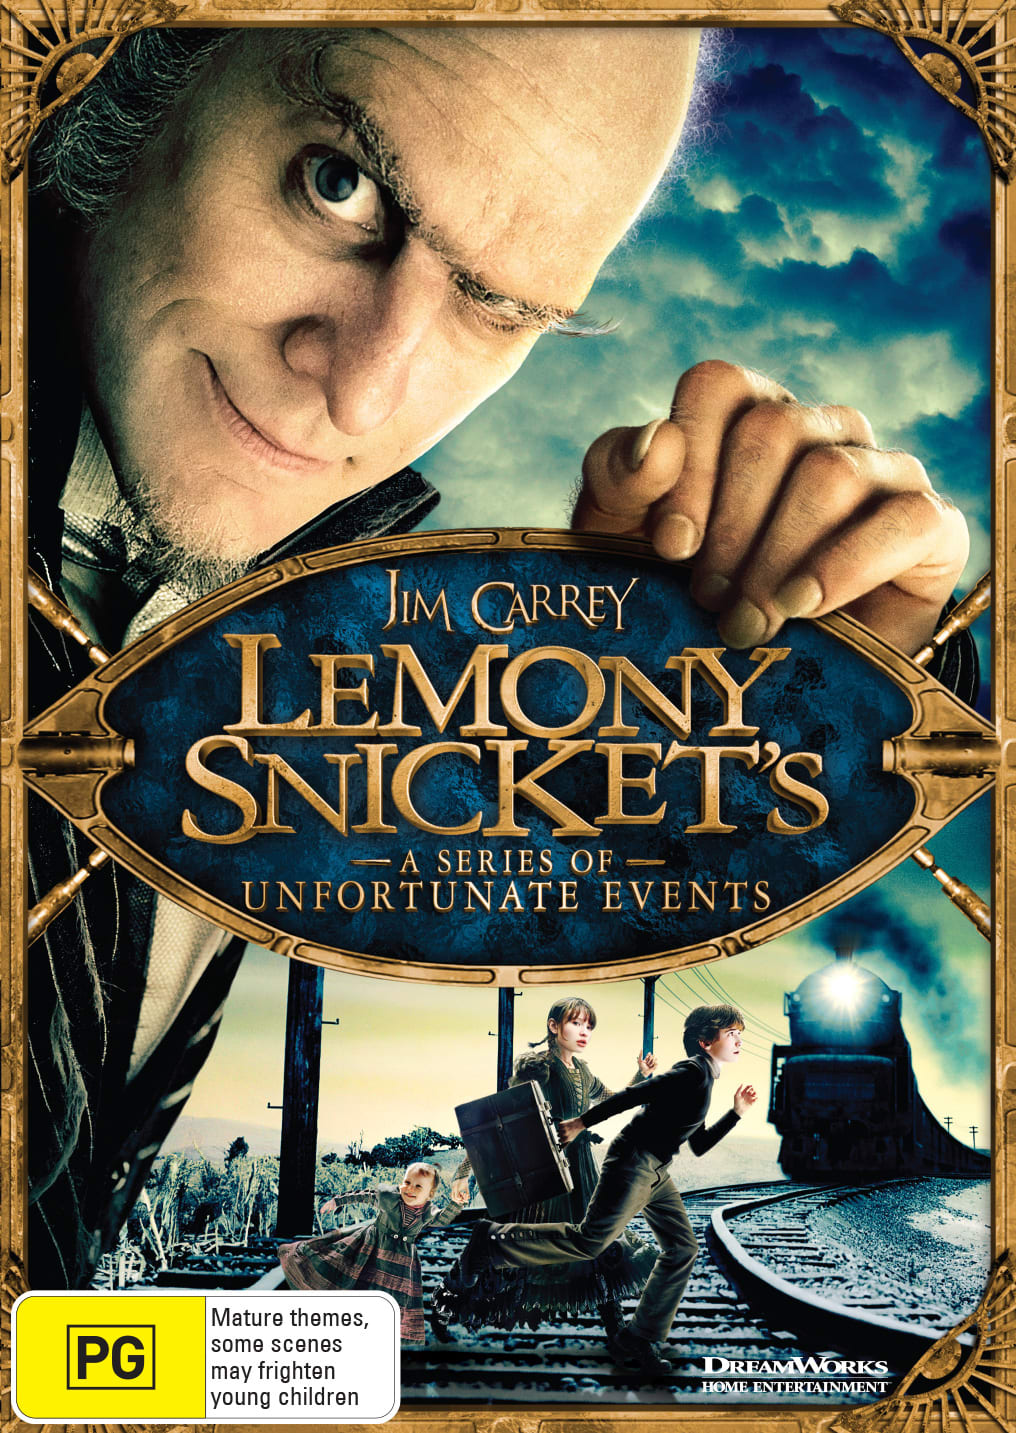 Lemony Snicket's a Series of Unfortunate Events [DVD]